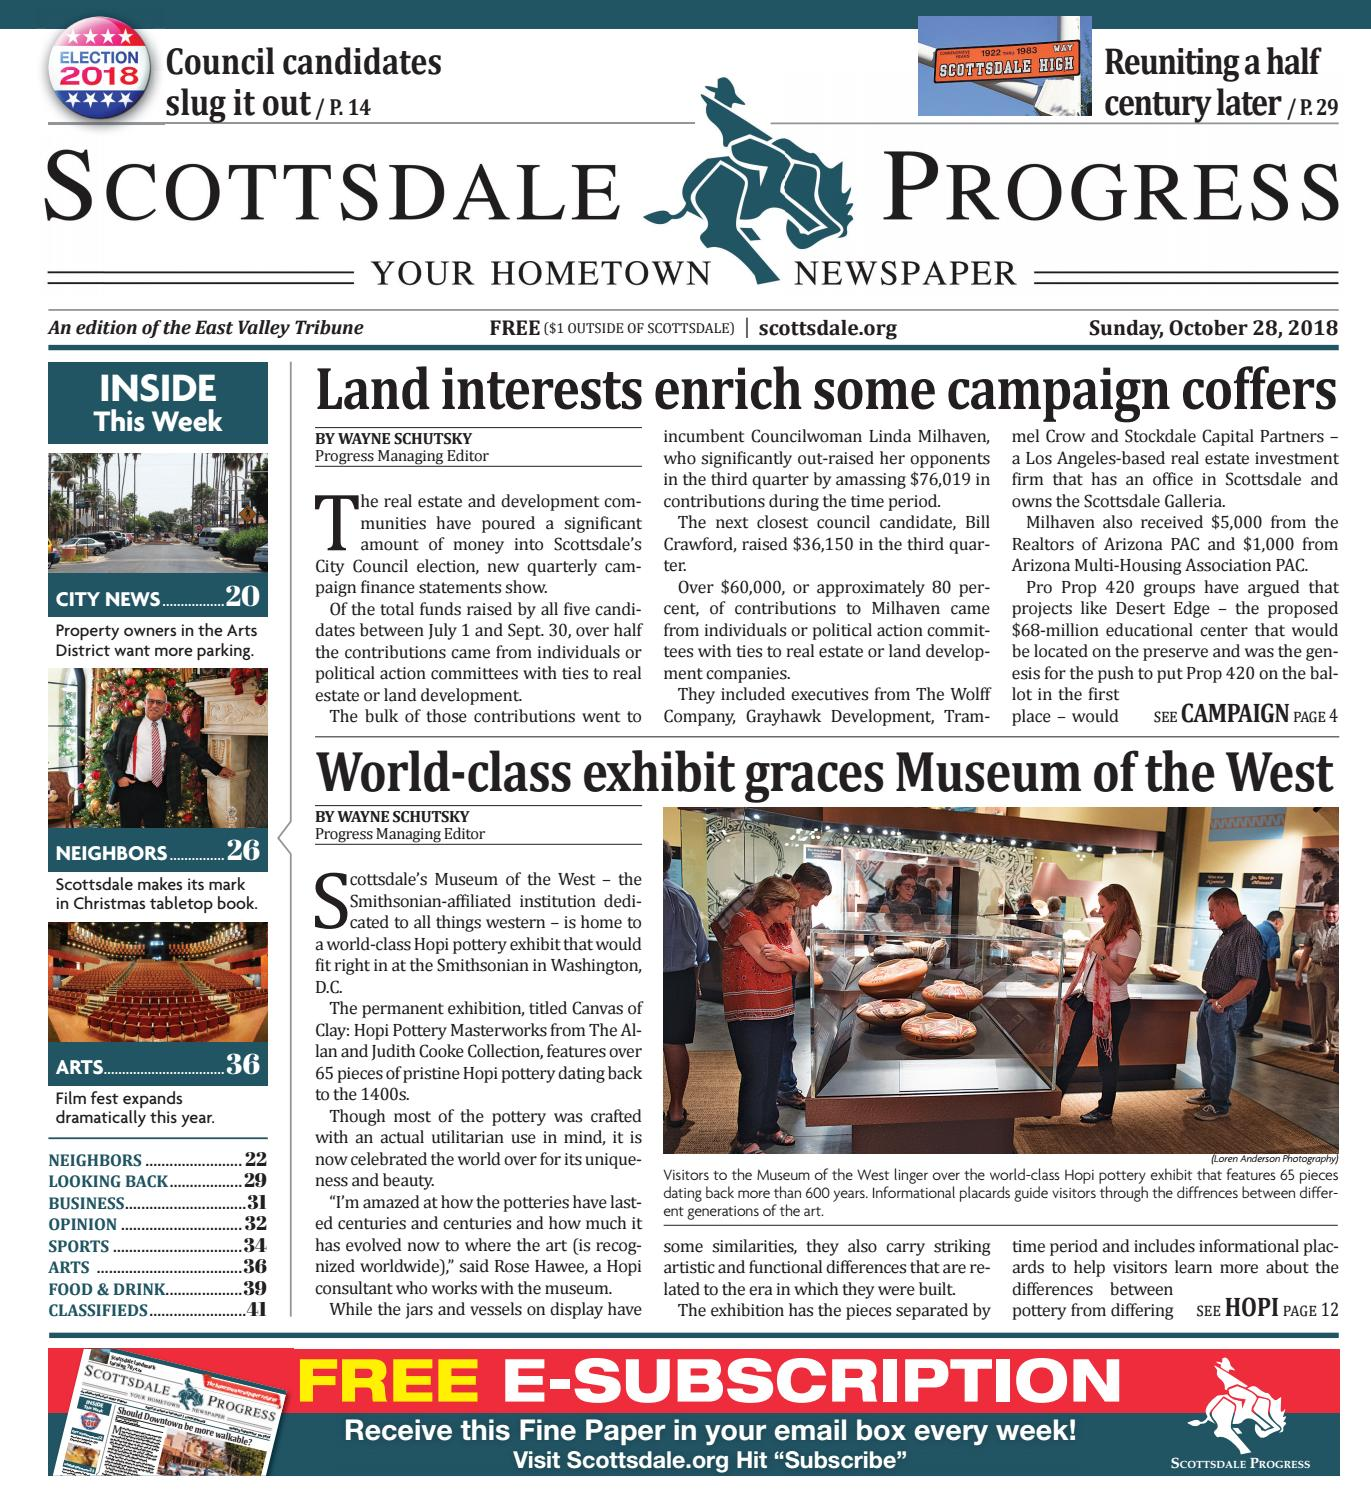 Scottsdale Progress - October 28, 2018 by Times Media Group